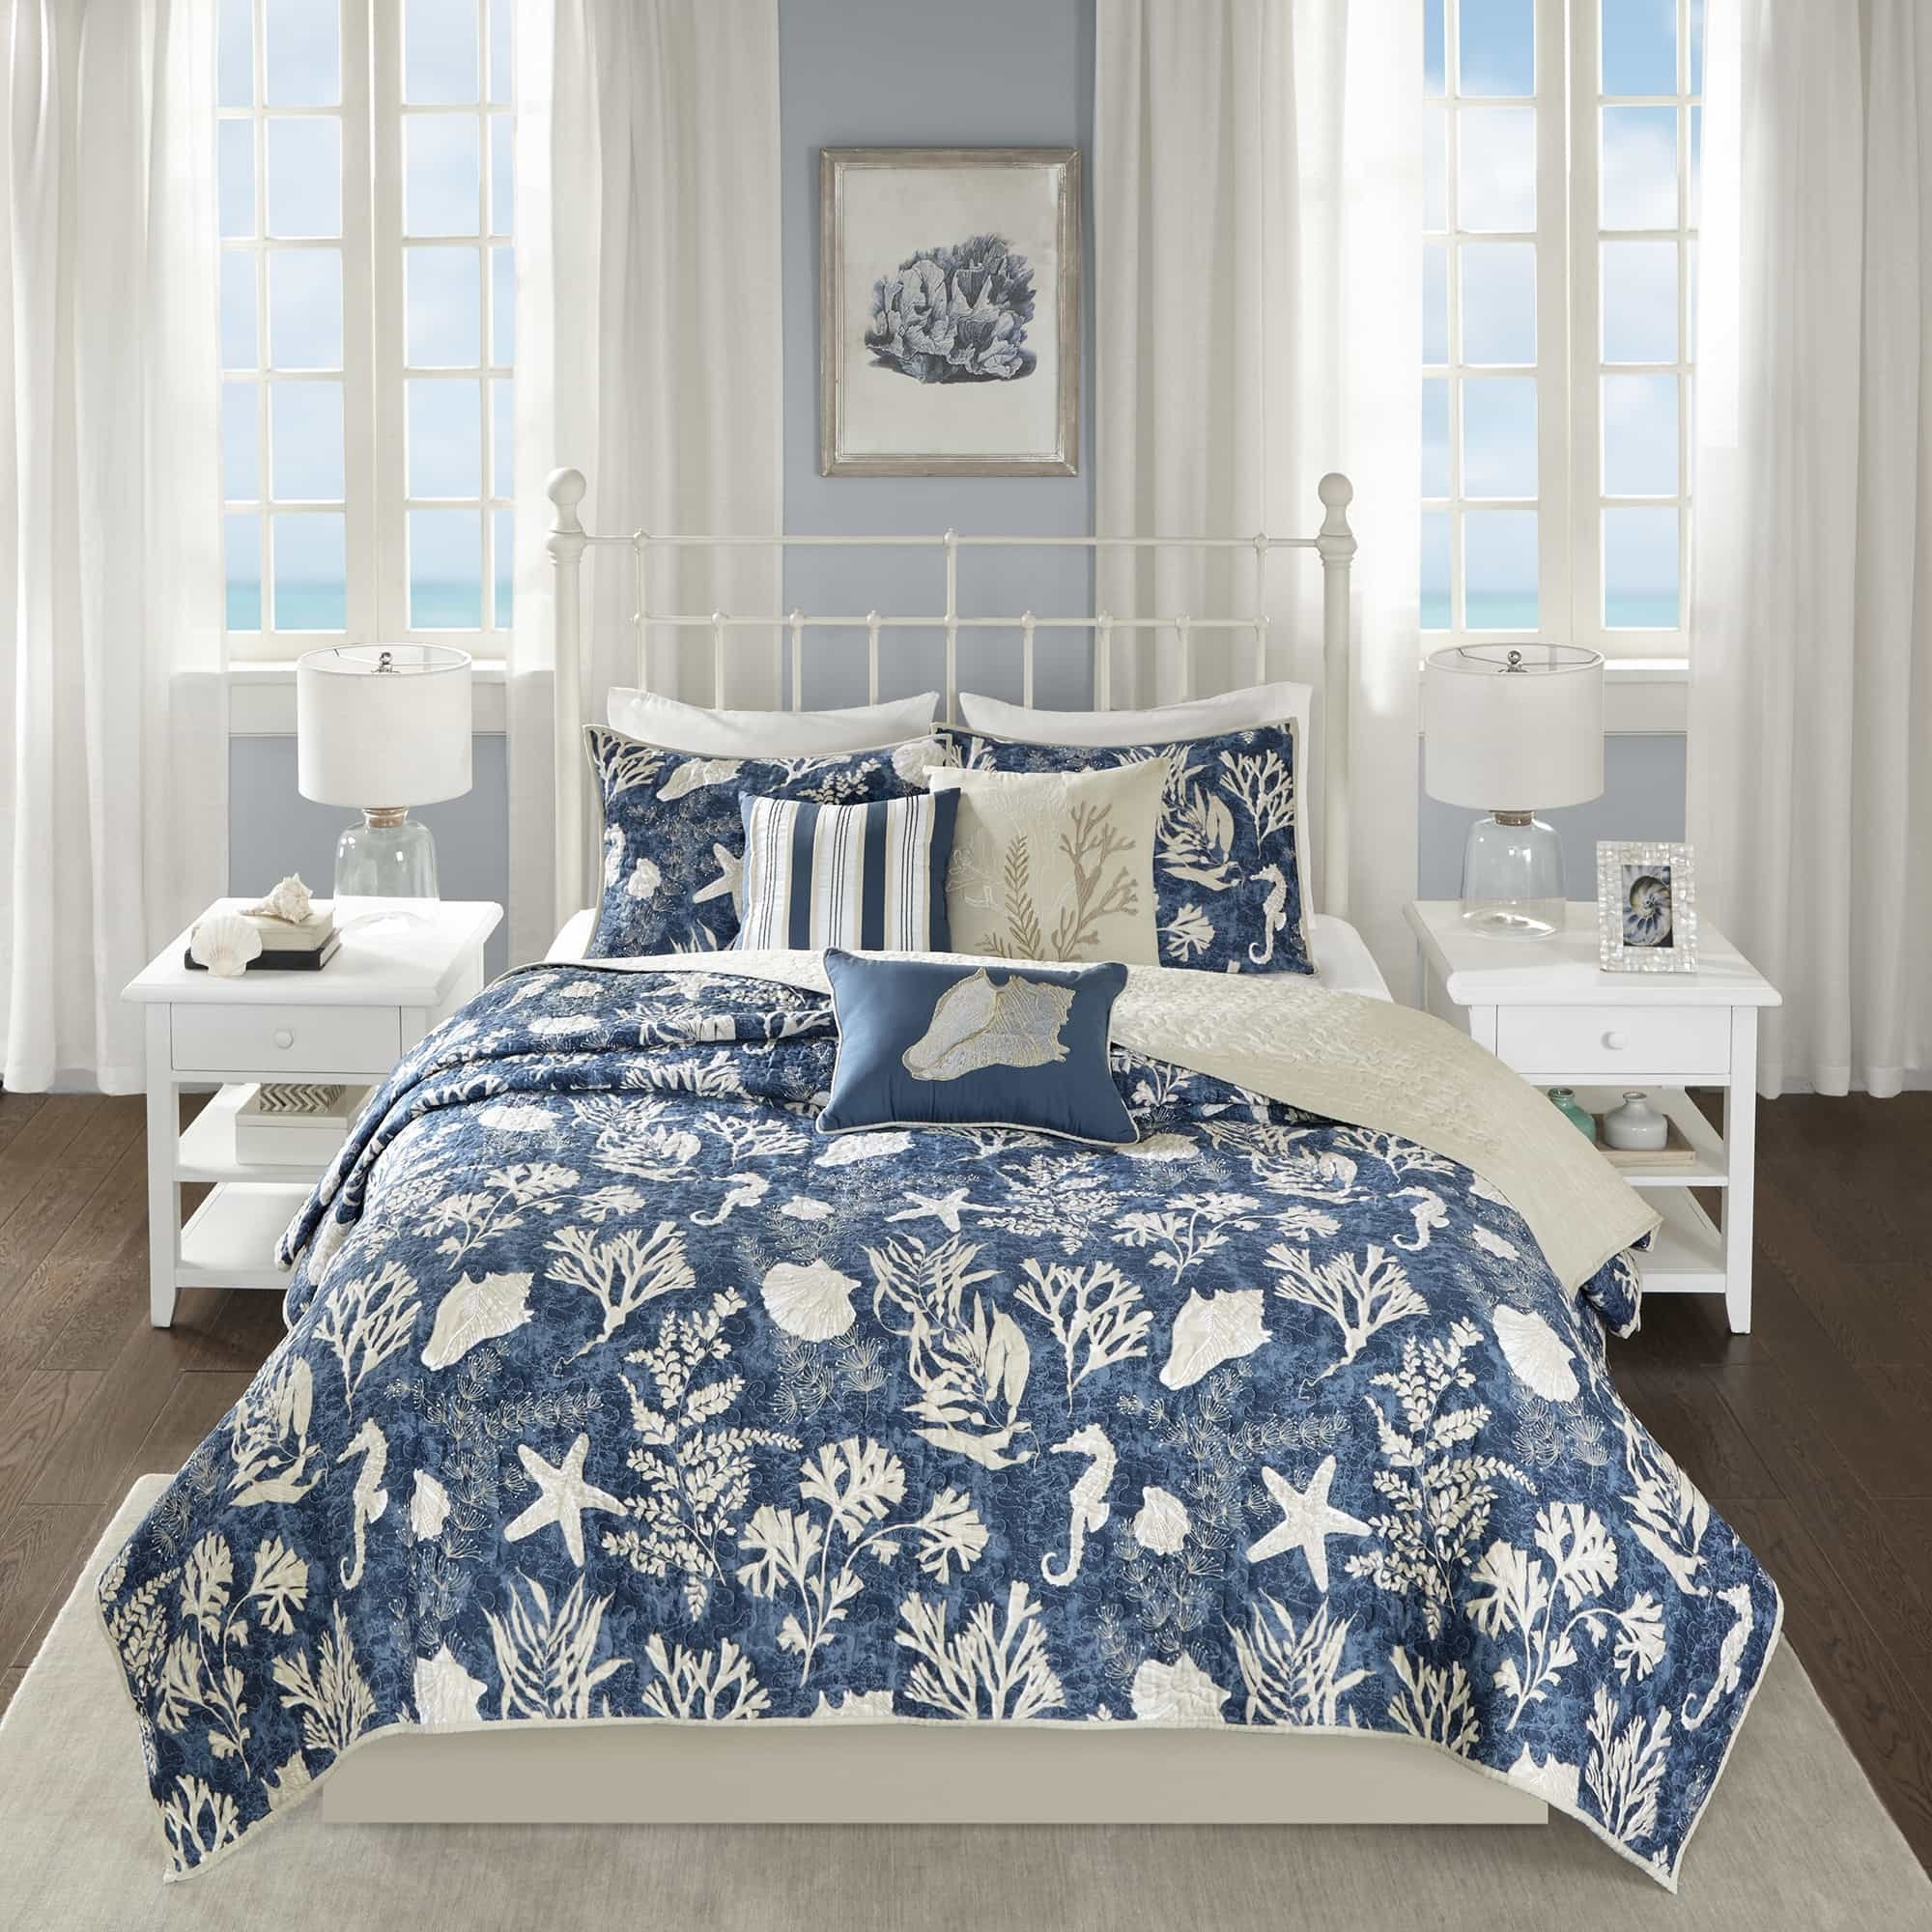 6 Piece Underwater Sea Creatures Theme Coverlet Set Full/Queen Size, Printed Coastal Coral Reefs Seahorse Sea Shells Starfish Bedding, Whimsical Rich Nautical Design, Fun Animals Pattern, Navy, Ivory by Shopping Experts (Image #1)